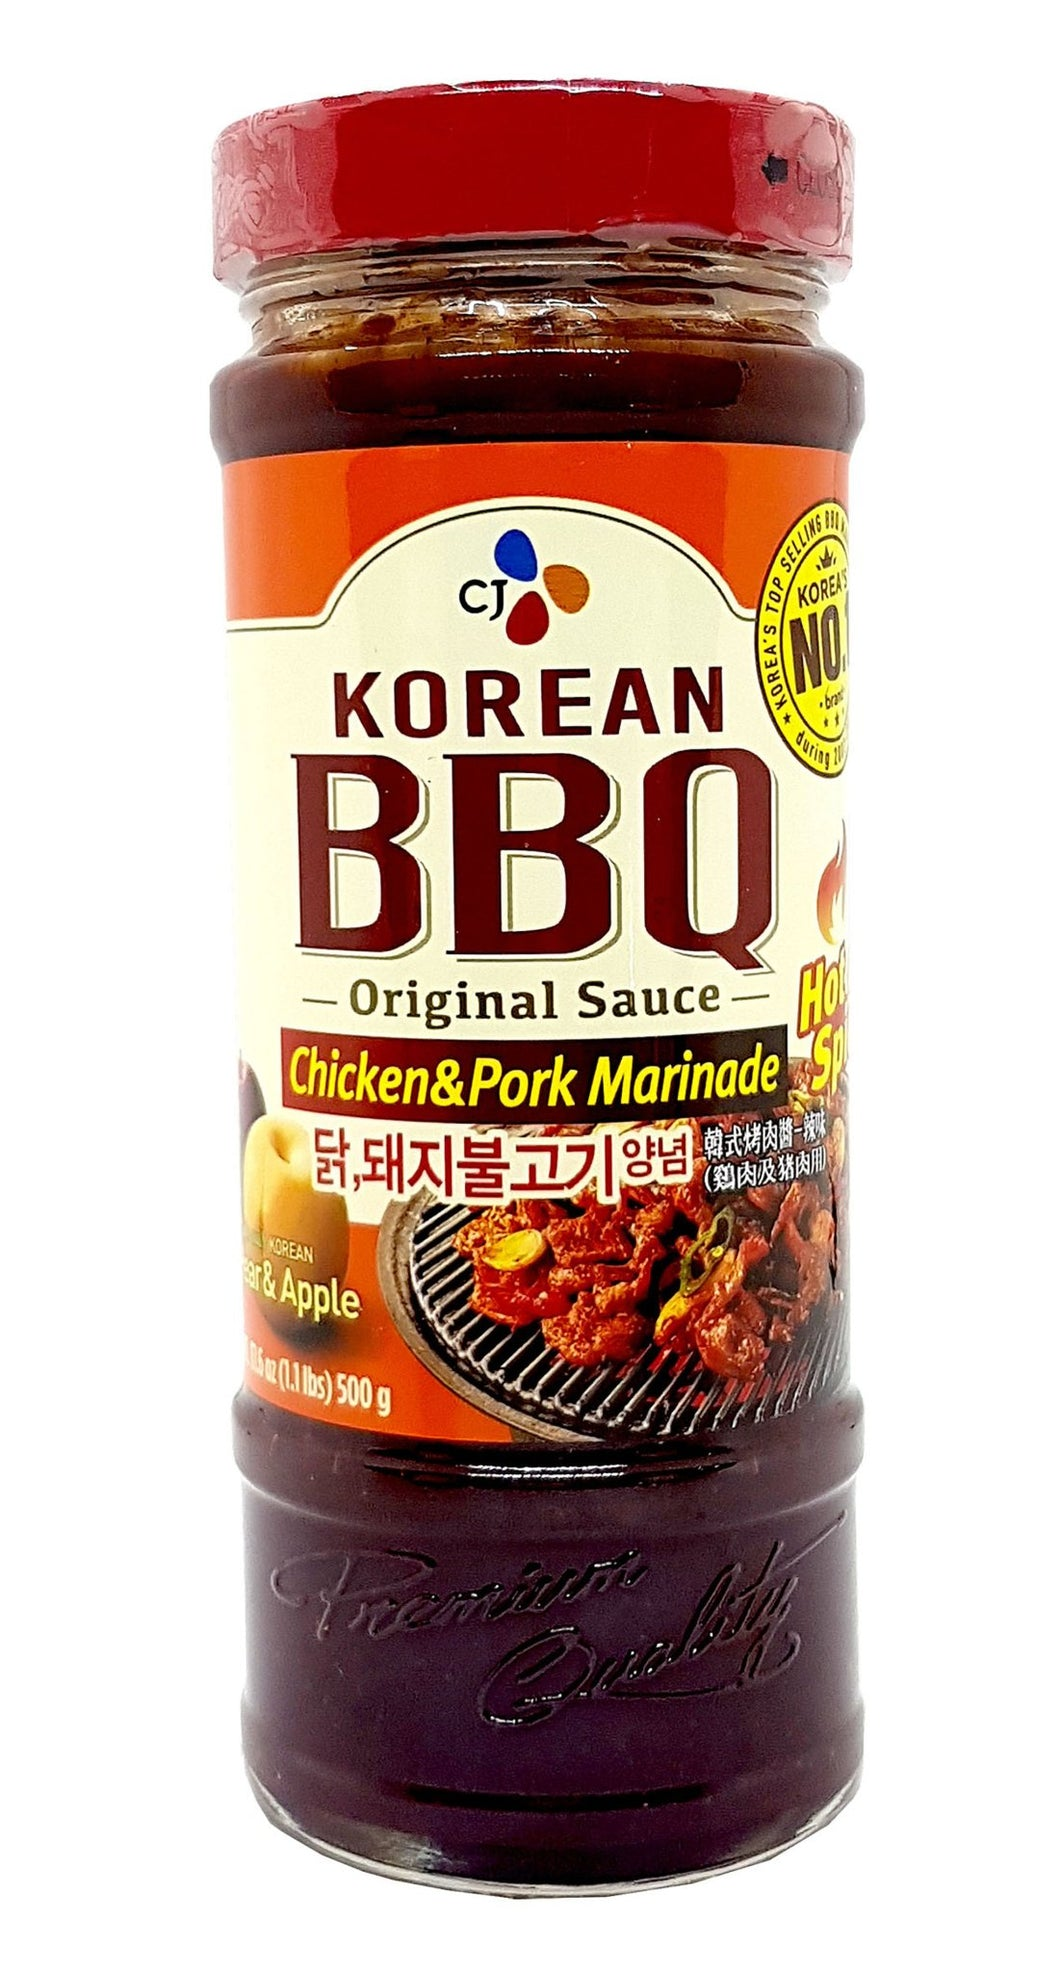 CJ Korean BBQ Sauce Hot & Spicy Chicken & Pork Marinade 17.6 Oz.